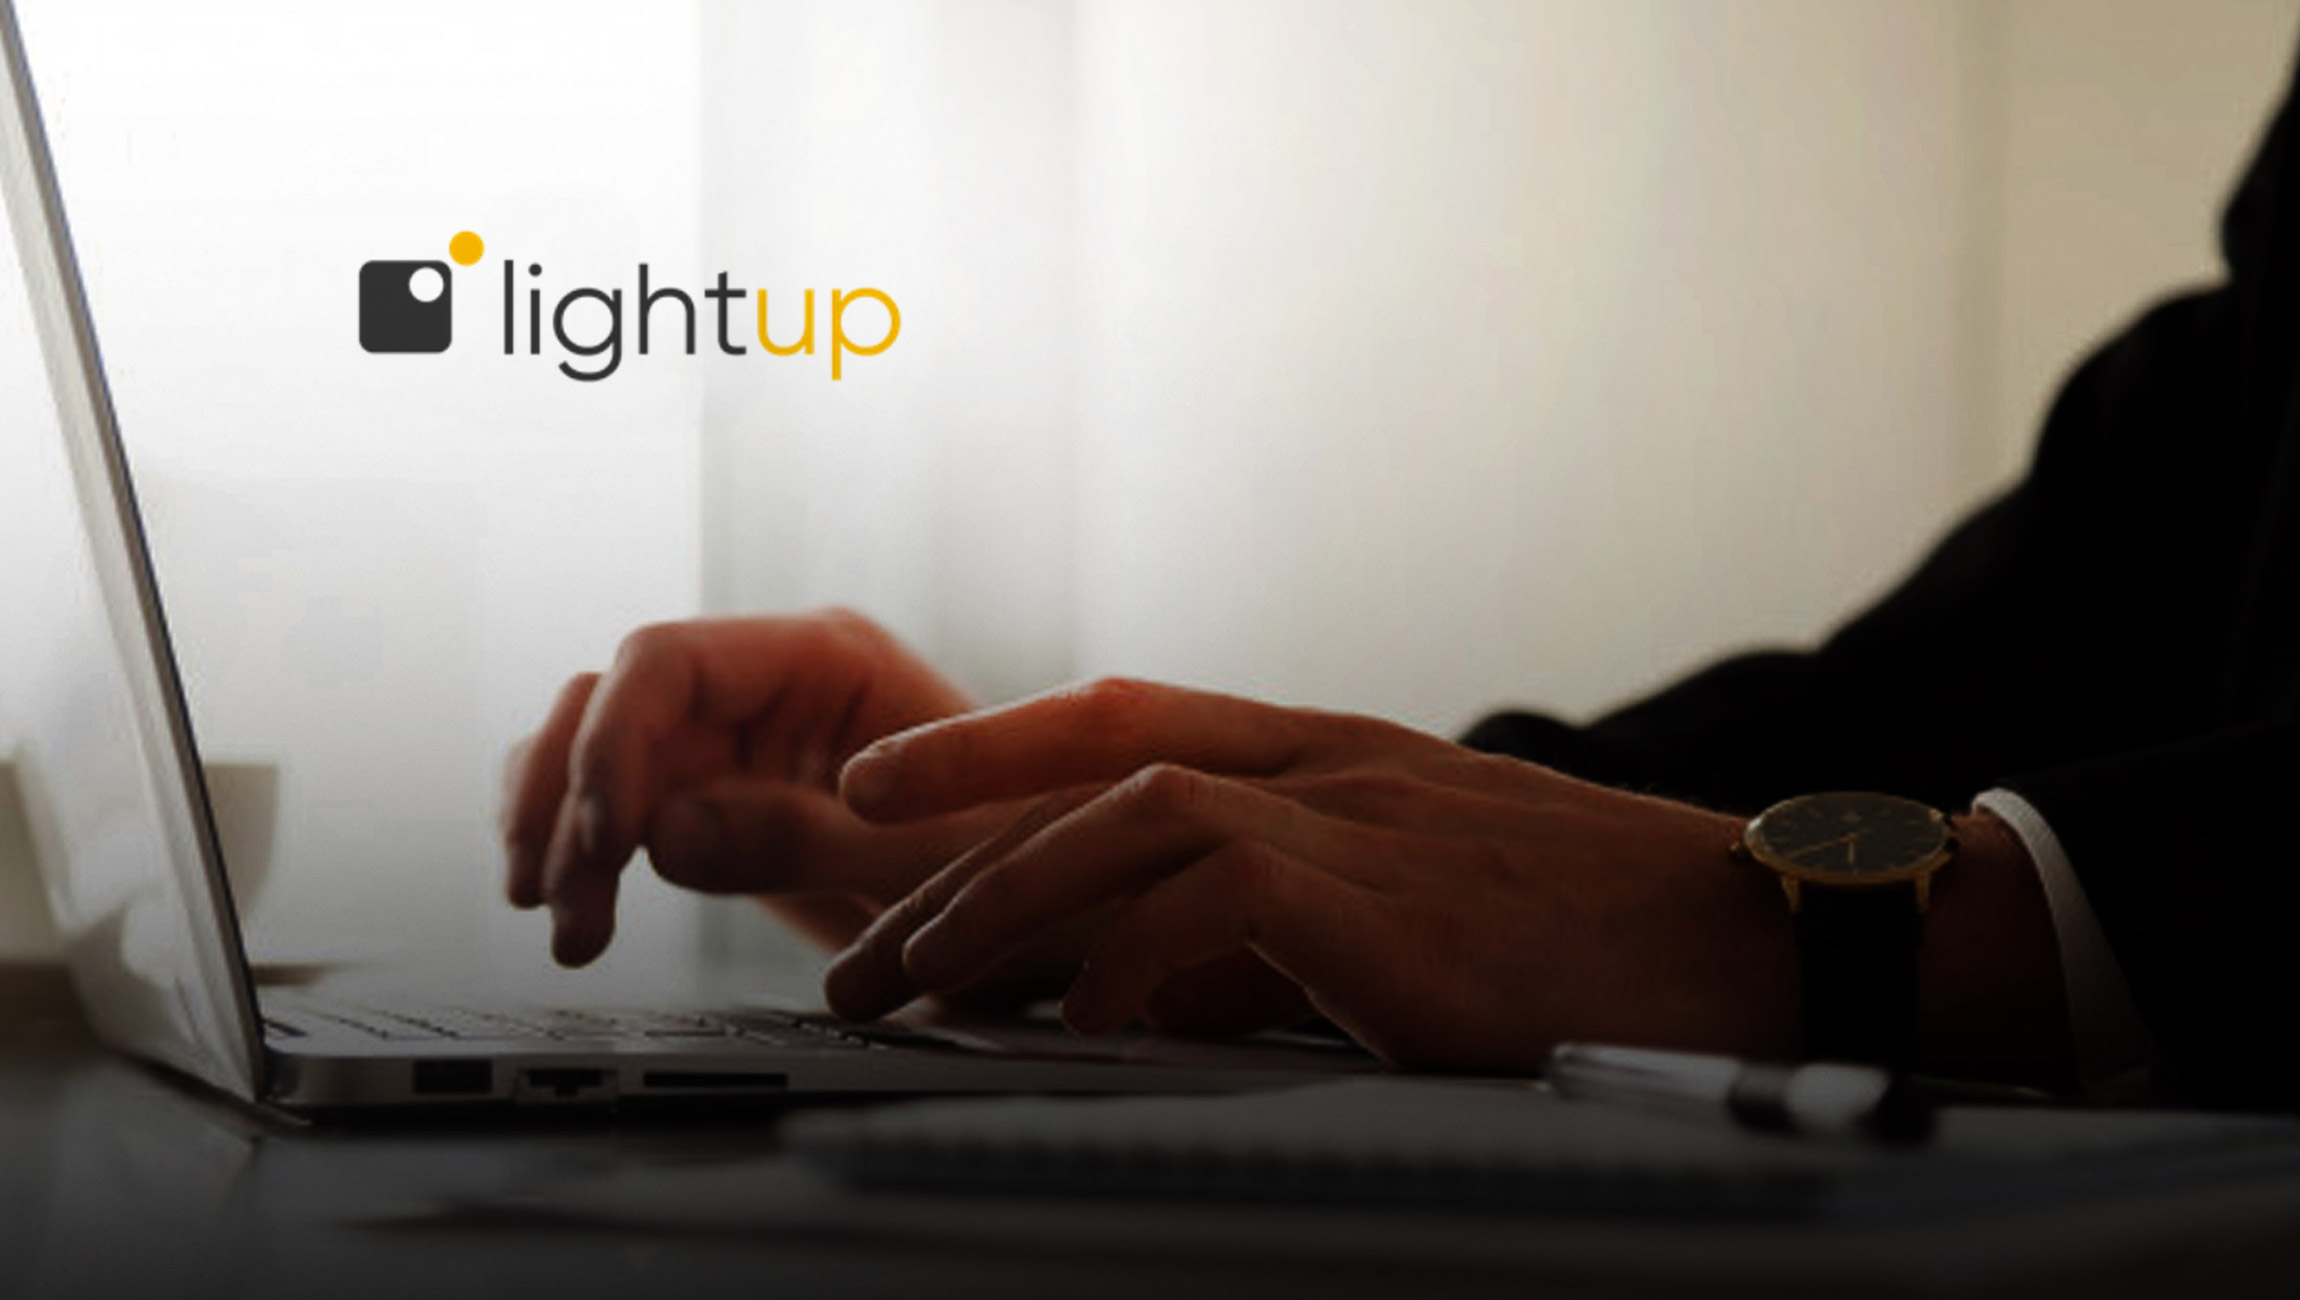 Lightup Announces Beta Program for Breakthrough Data Quality Monitoring Solution to Make Data Decisions and Applications Dependable